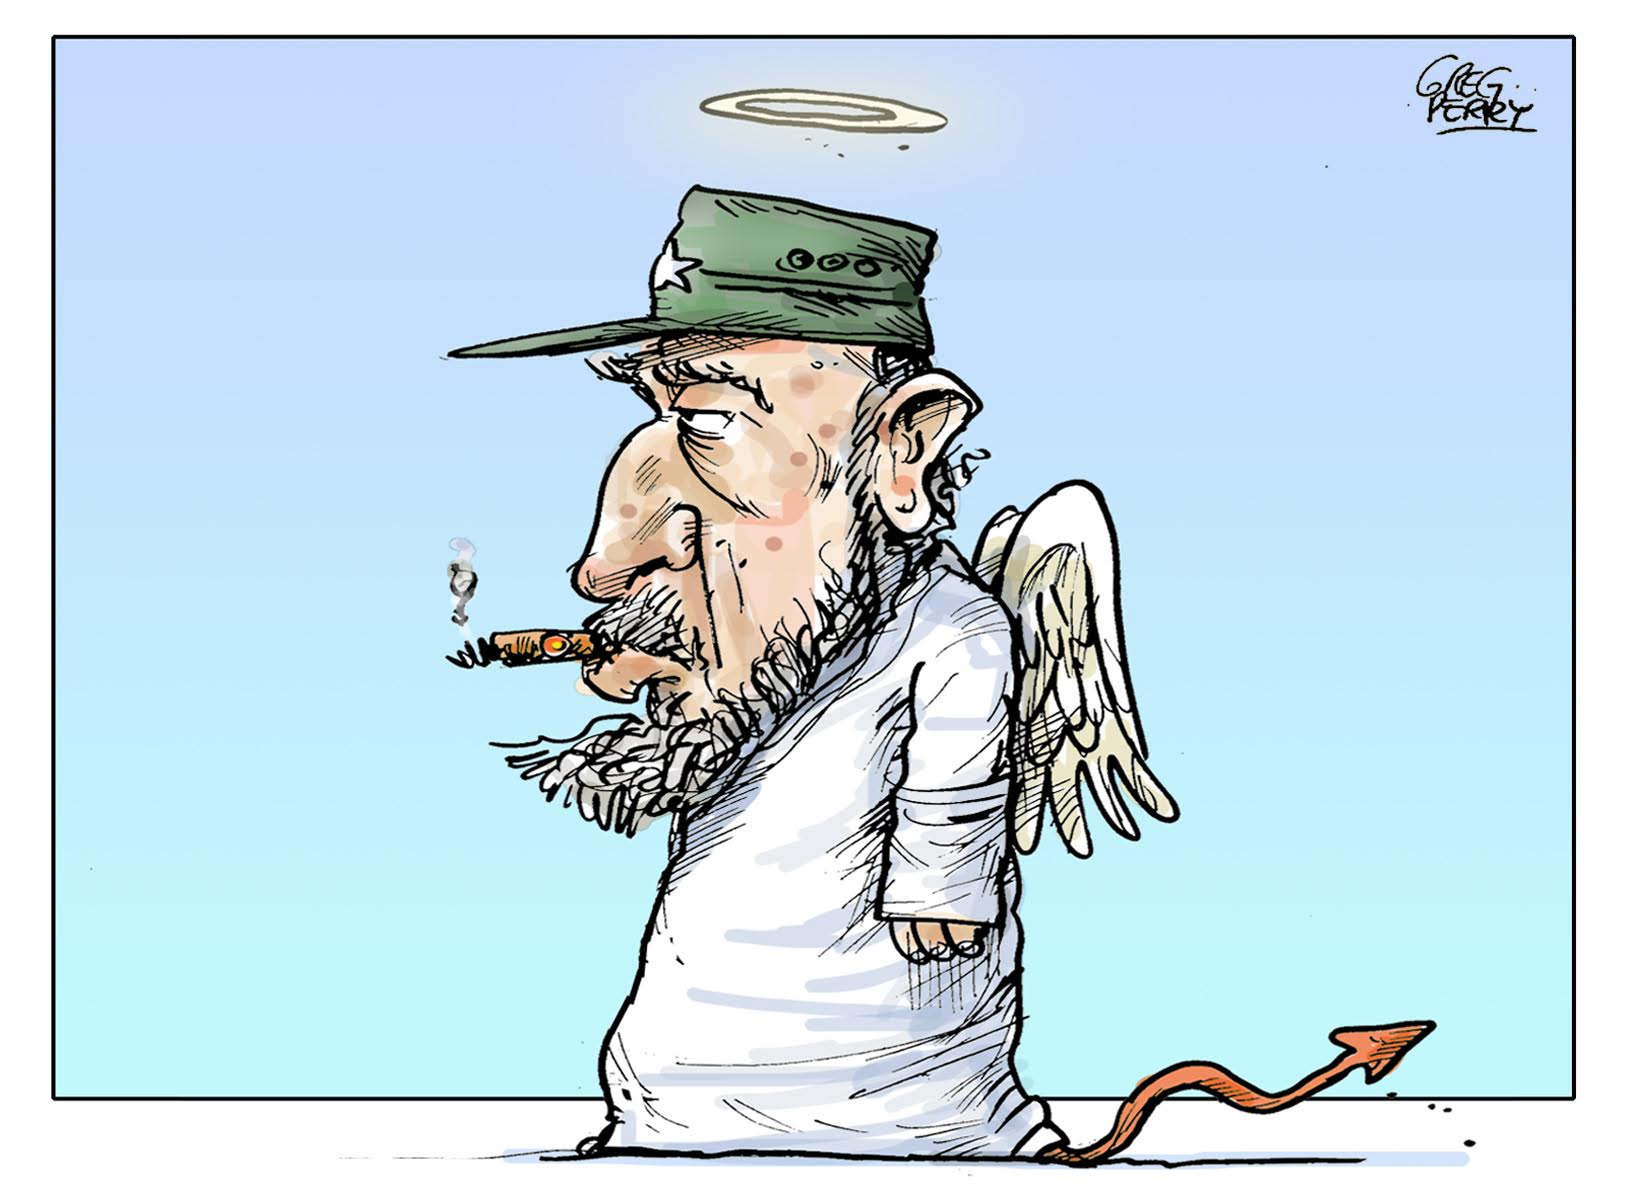 Castro cartoon by Greg Perry